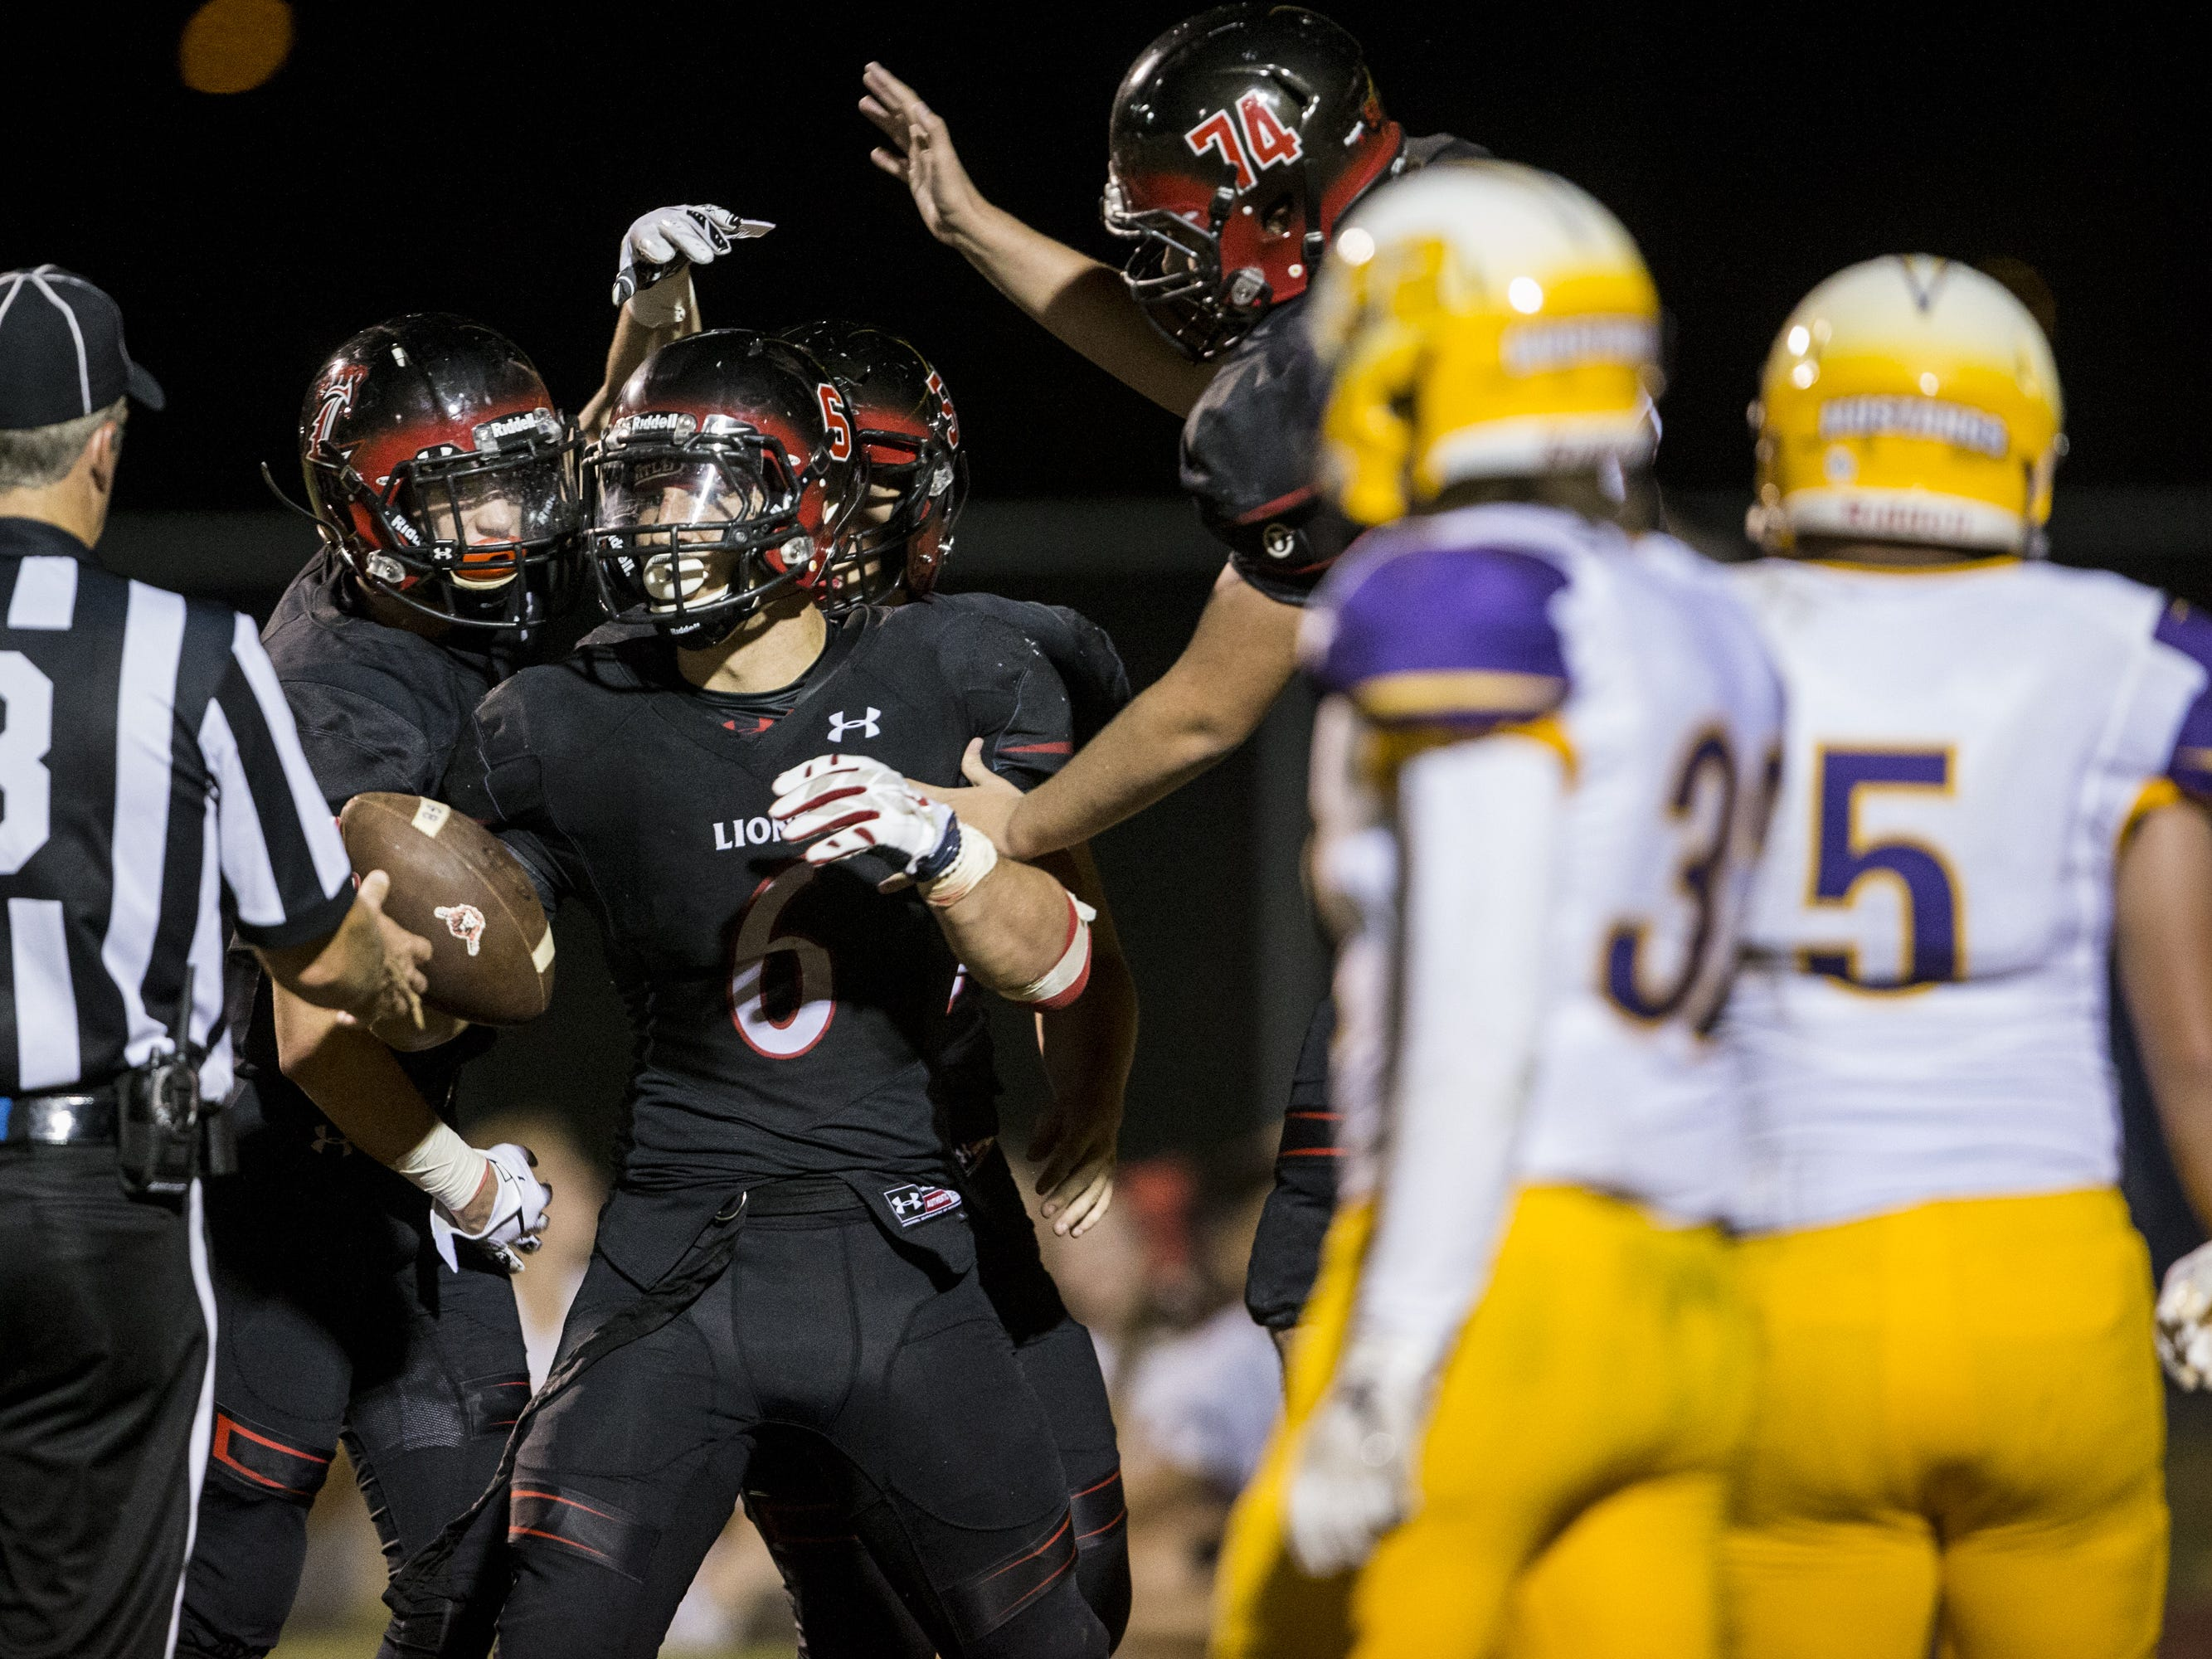 Liberty's Jett Kinsch celebrates after rushing for a touchdown against Sunrise Mountain in the 3rd quarter on Friday, Aug. 31, 2018, at Liberty High School in Peoria, Ariz.  #azhsfb